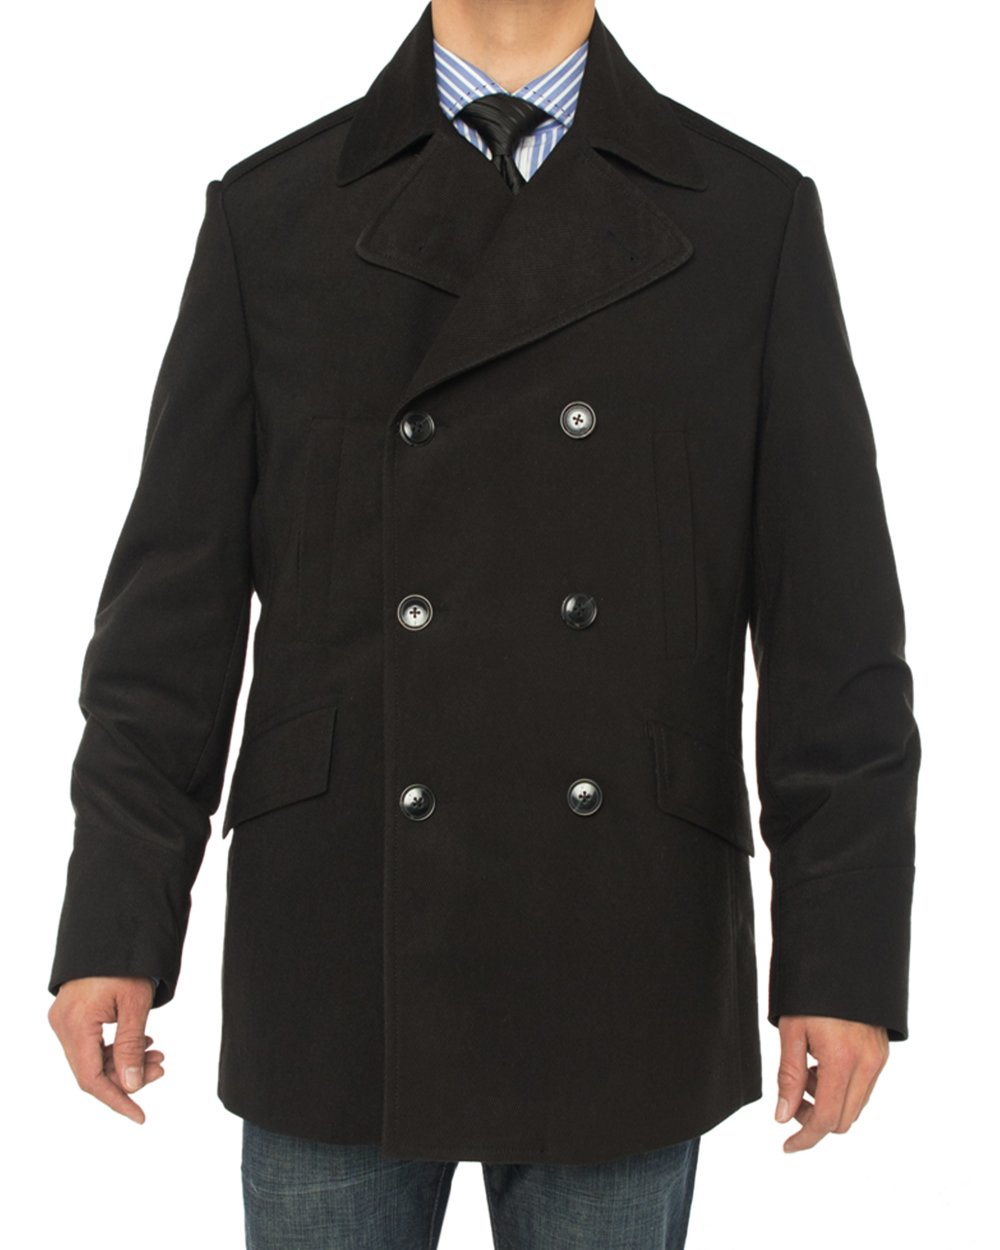 Luciano Natazzi Men's Double Breasted Top Coat Modern Fit Pea Coat (42 US - 52 EU, Black) by Luciano Natazzi